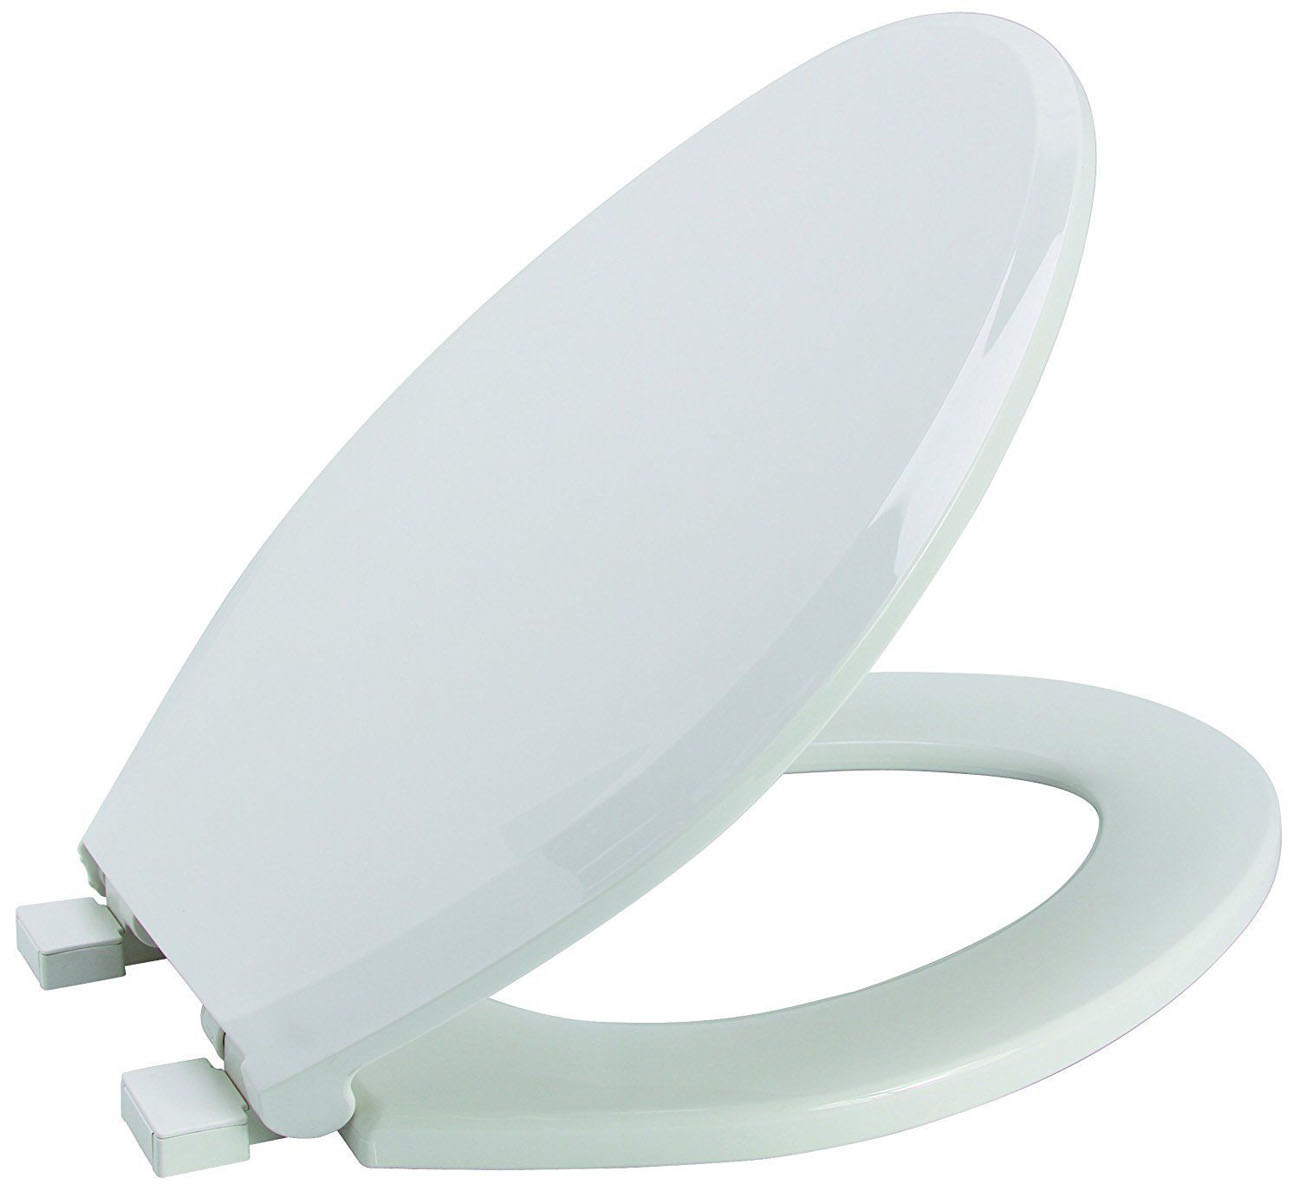 Premier Slow-Close Elongated Plastic Toilet Seat, White